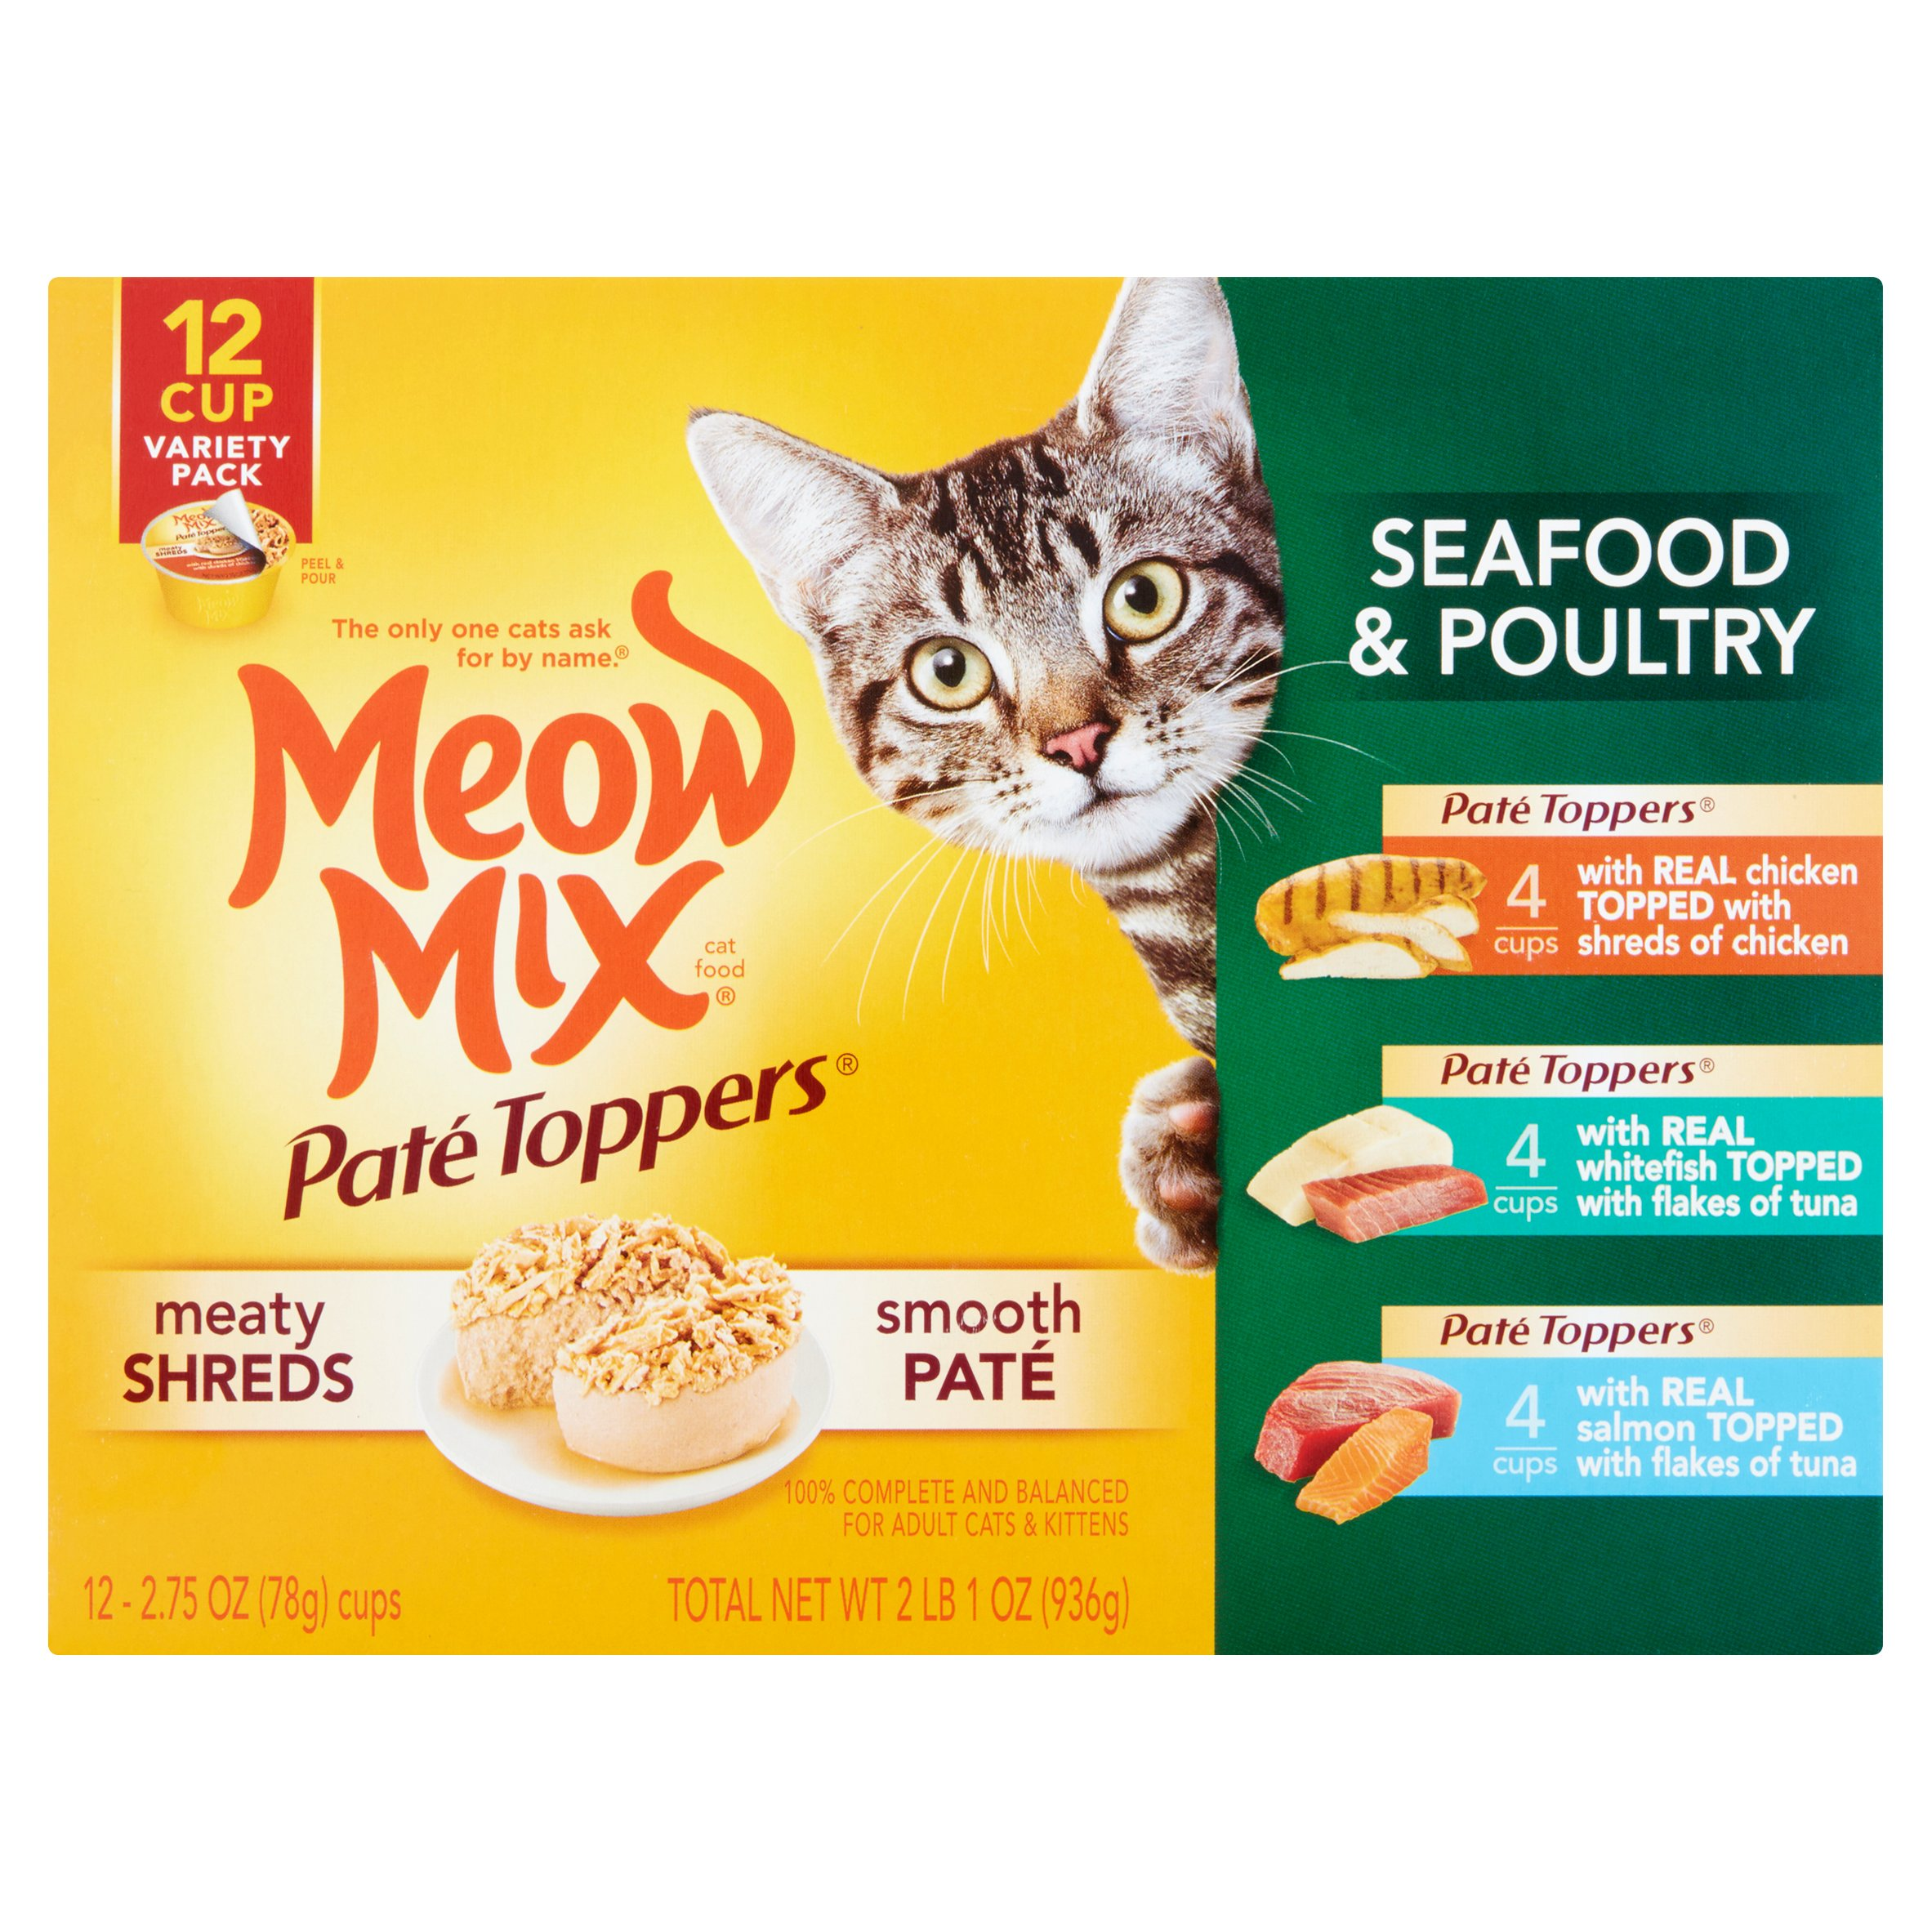 Meow Mix Paté Toppers Seafood & Poultry Wet Cat Food Variety Pack- (12) 2.75-oz Cups